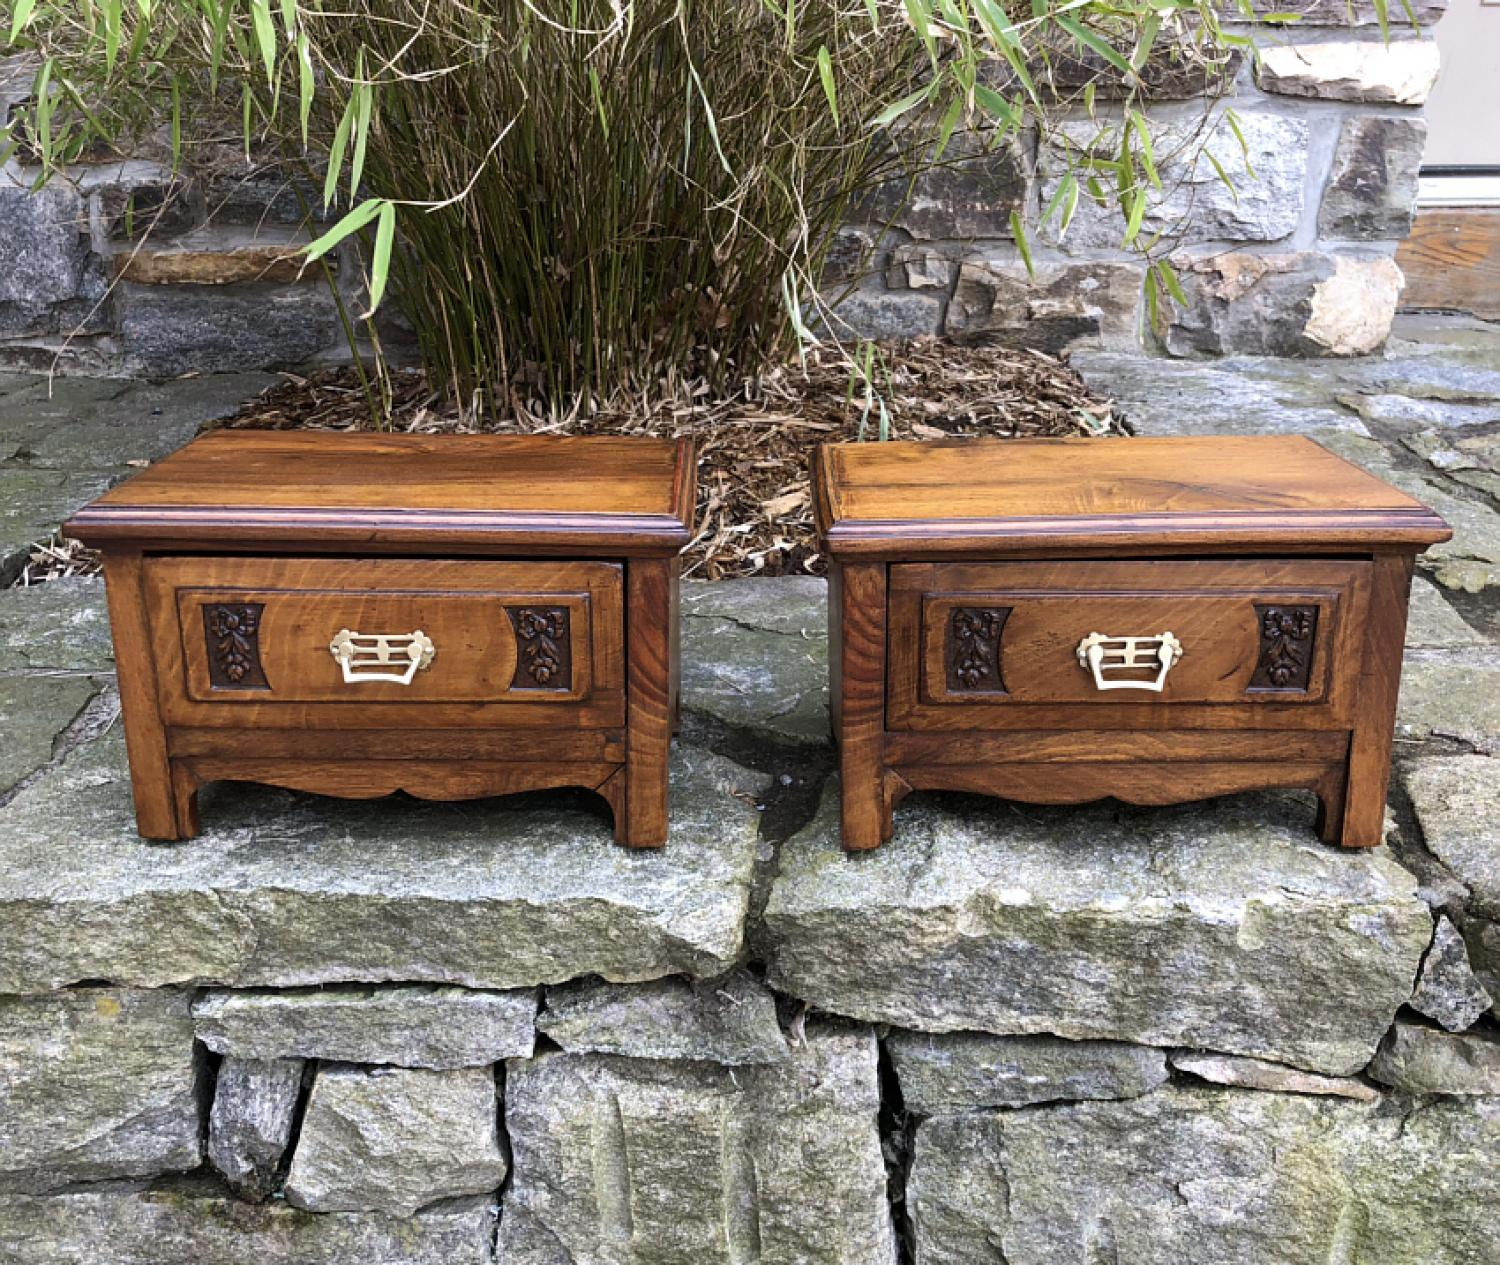 Pair of Art Nouveau jewelry boxes c1890